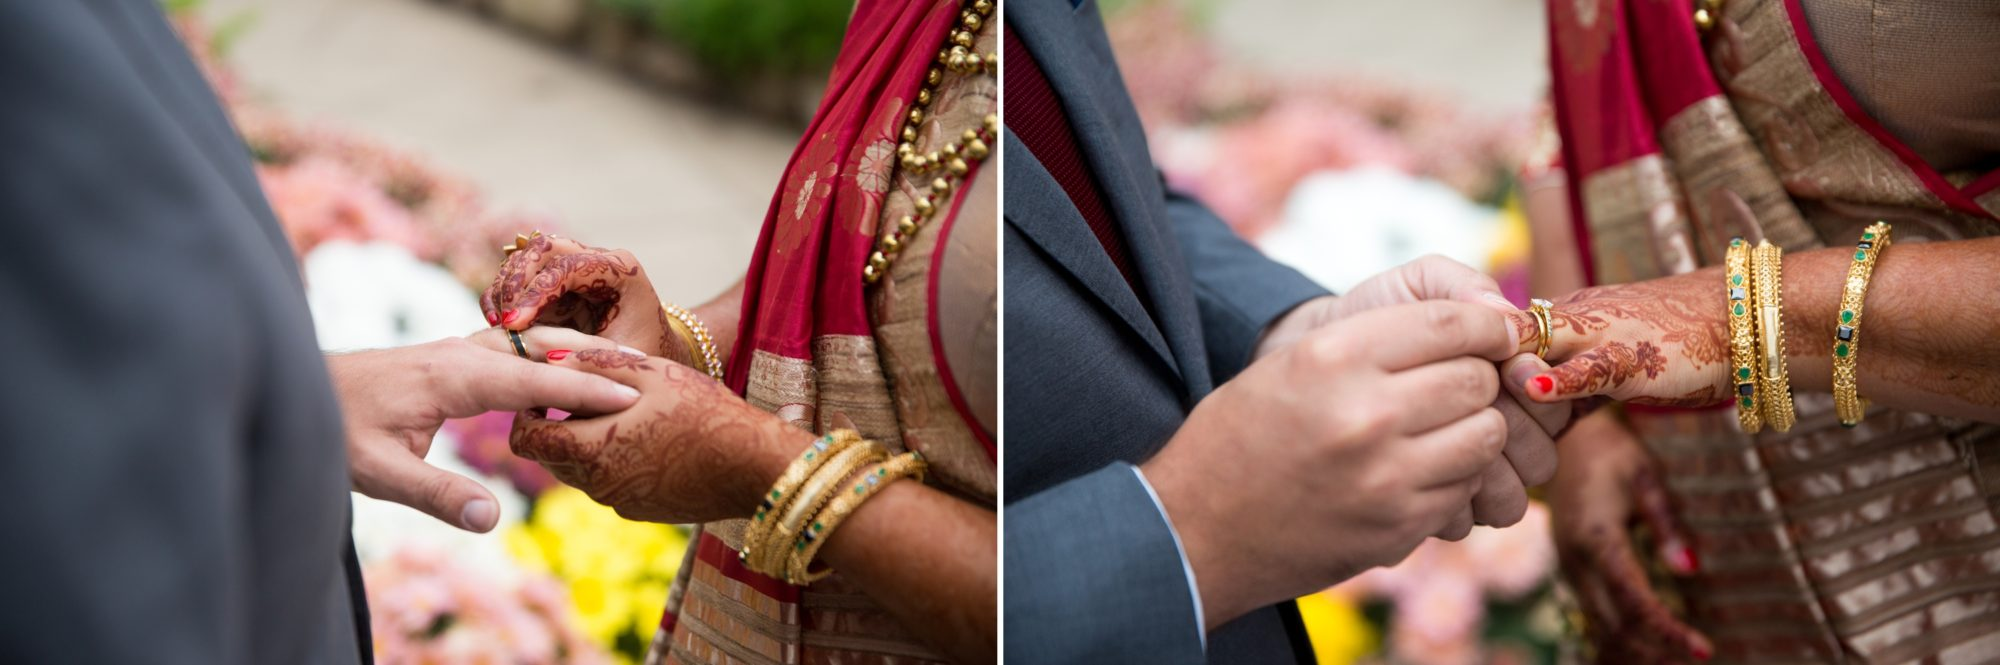 Ceremony Rings Indian Wedding Zsuzsi Pal Photography